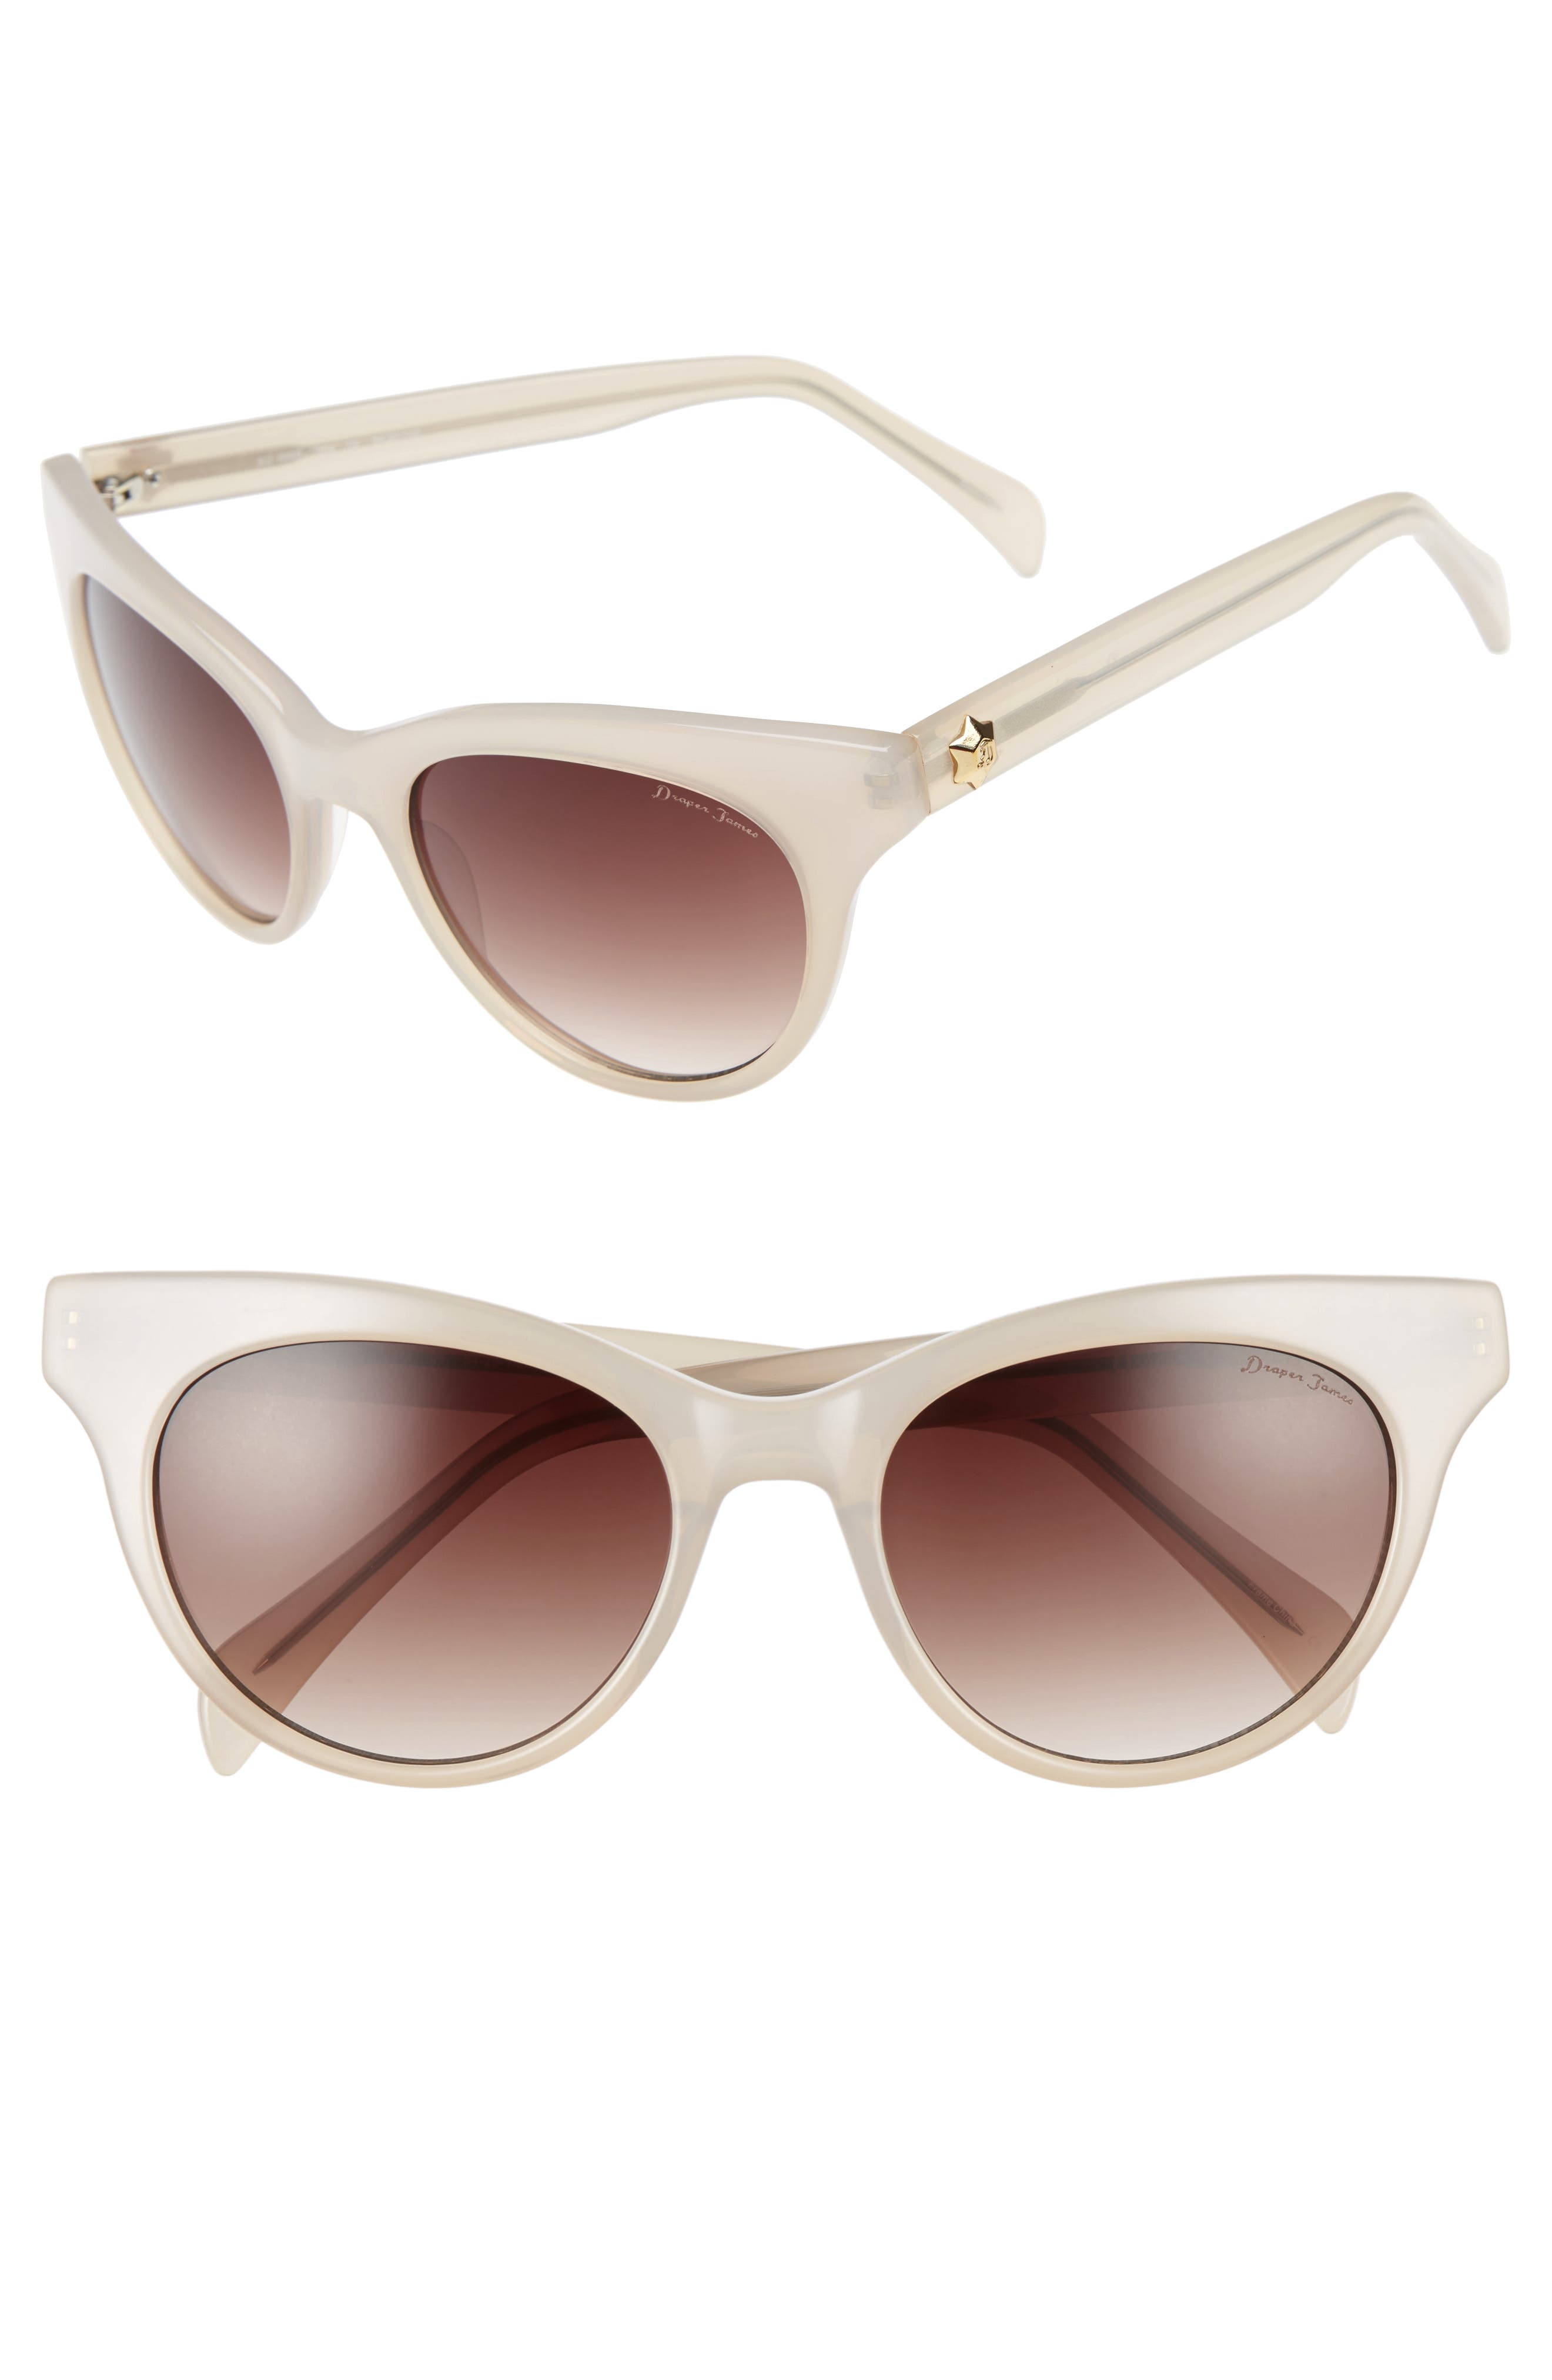 Alternate Image 1 Selected - Draper James 54mm Gradient Lens Cat Eye Sunglasses